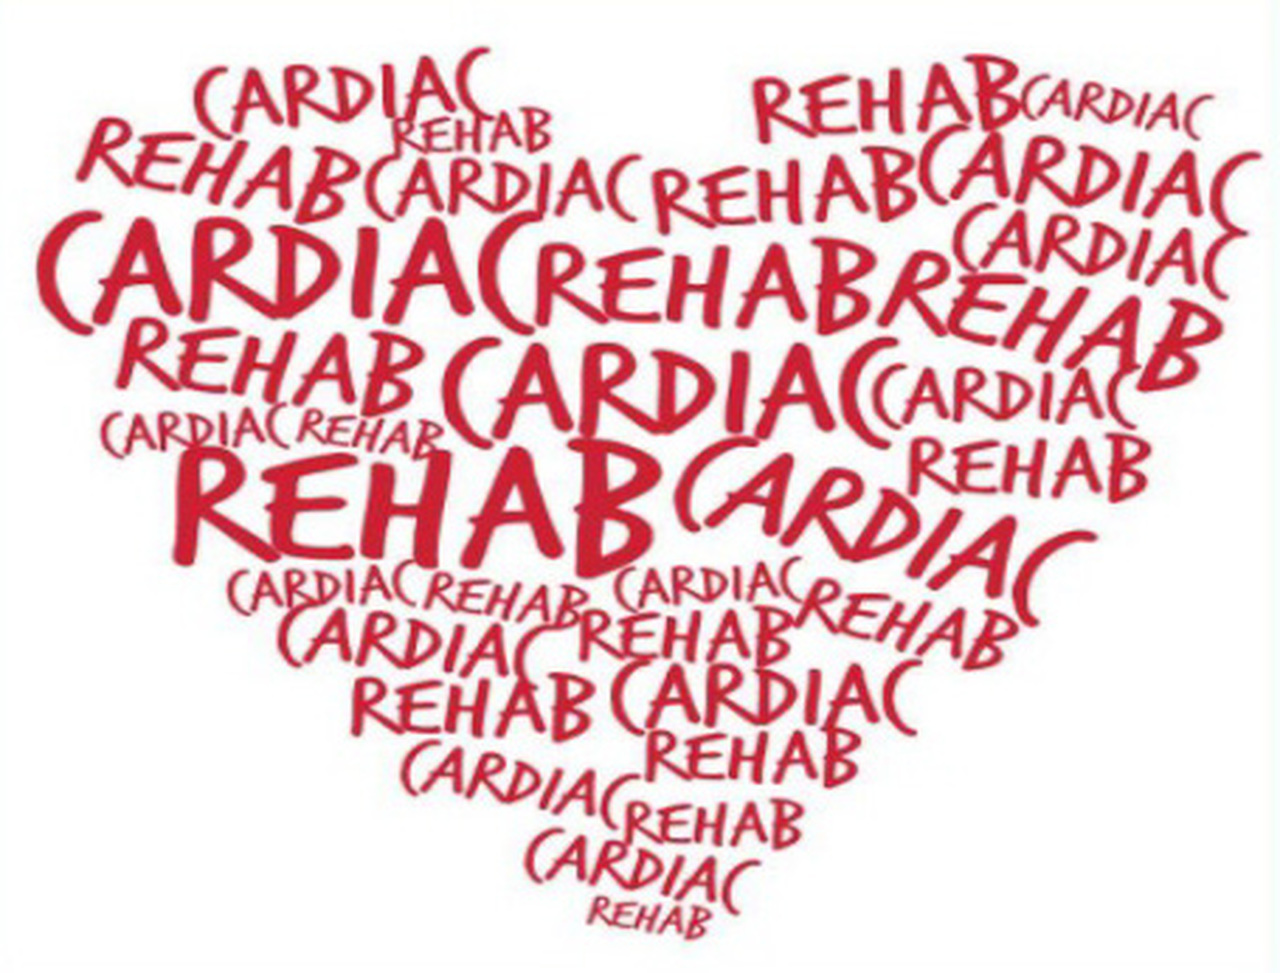 Cardiac Rehabilitation Returns